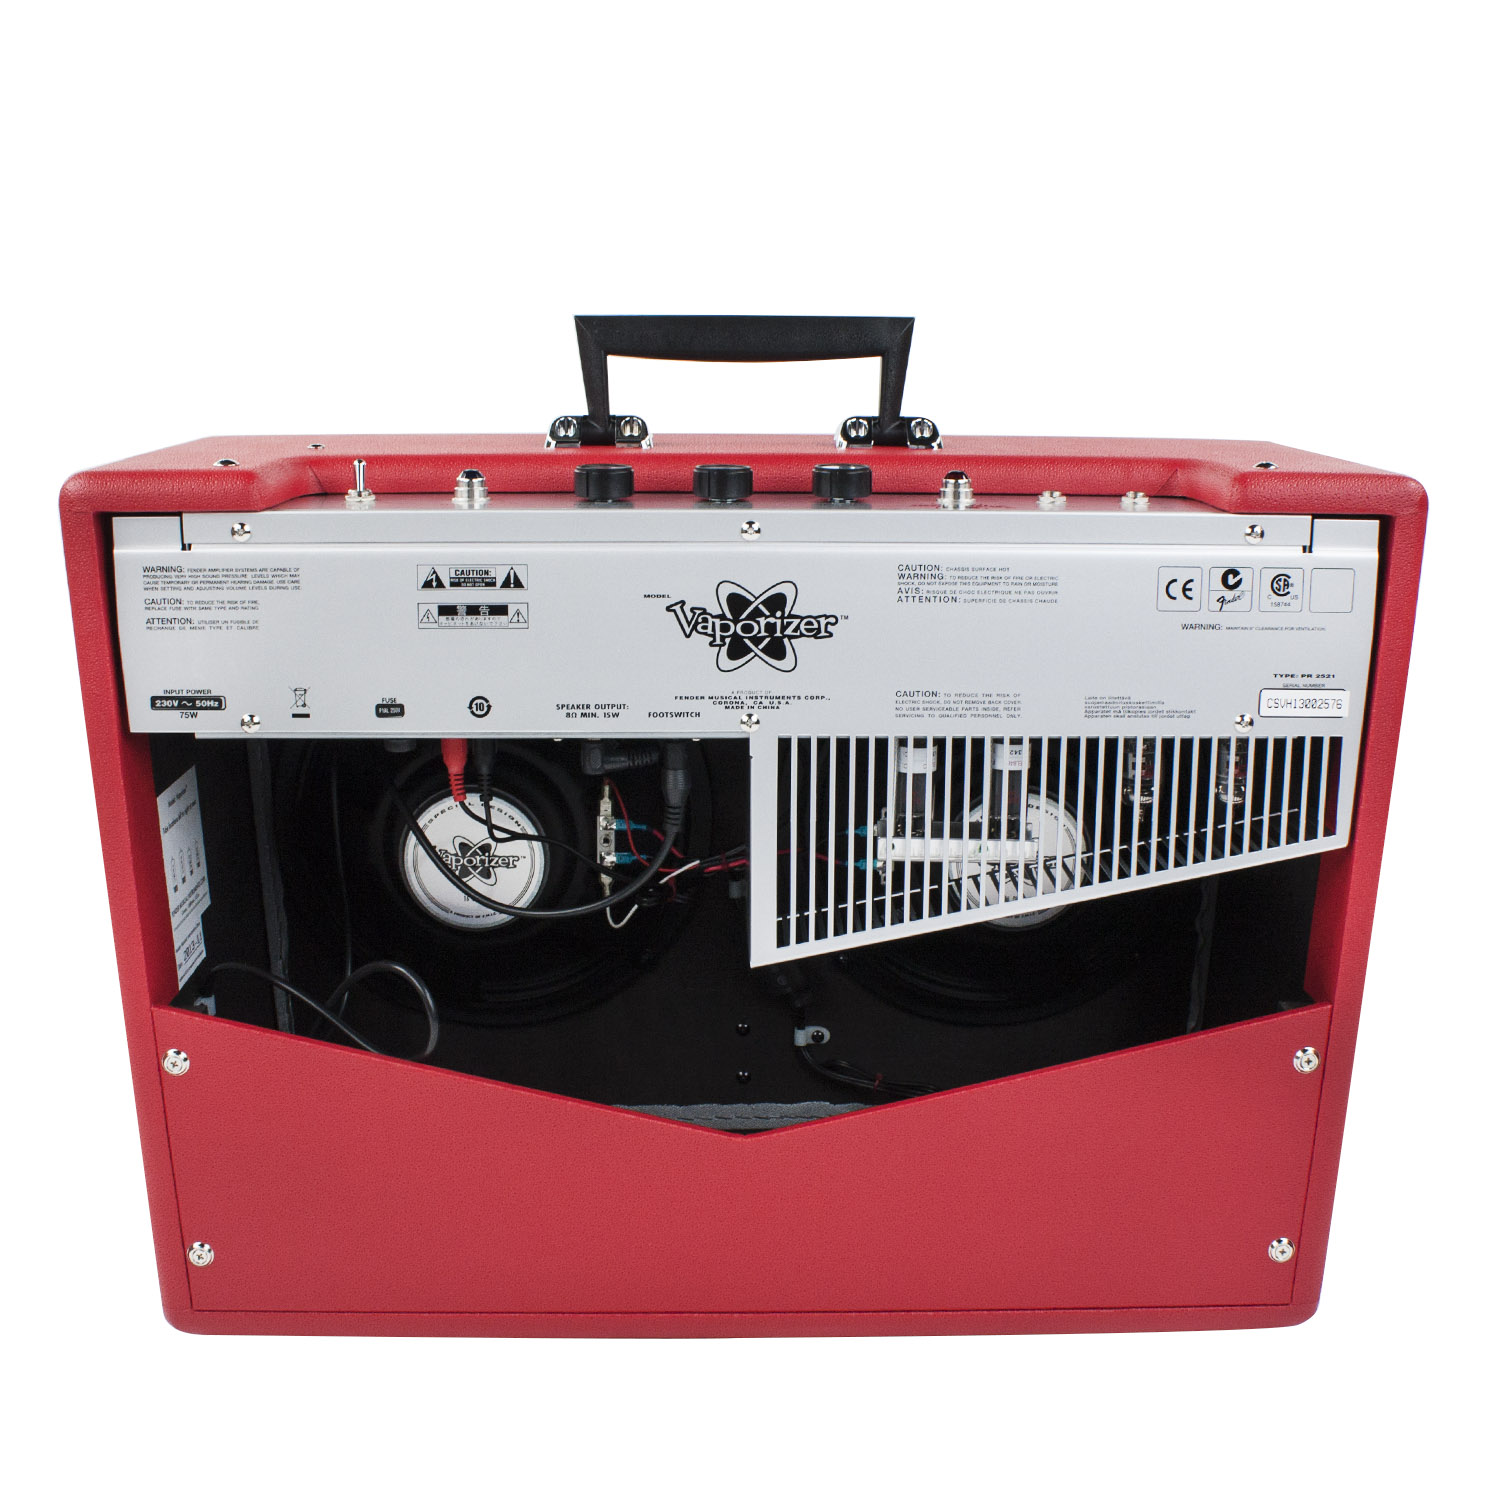 fender vaporizer rocket red 12 w r hren gitarrencombo. Black Bedroom Furniture Sets. Home Design Ideas